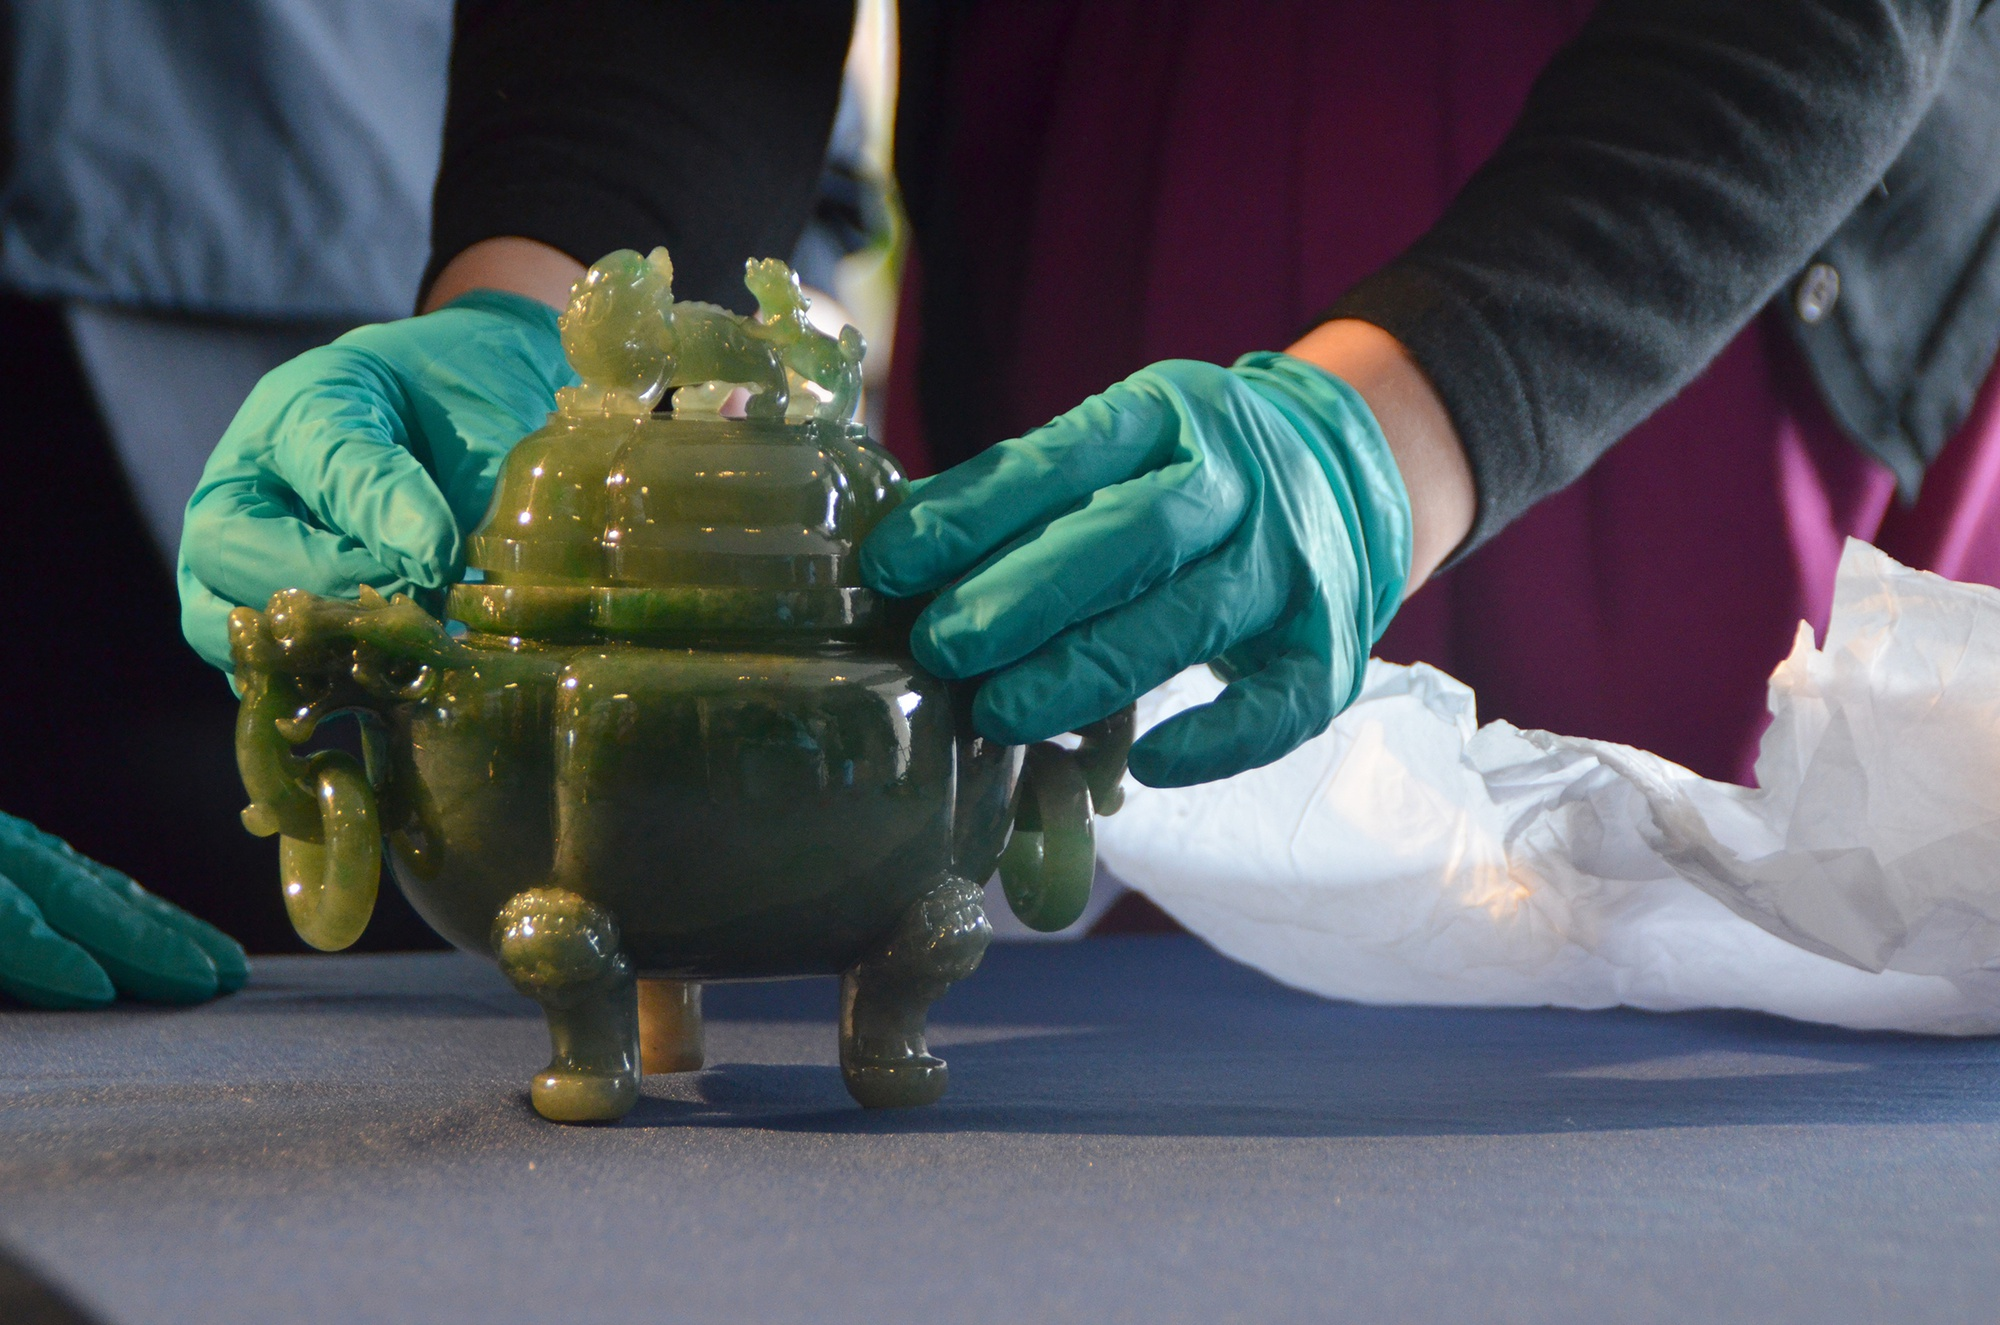 A Qing-dynasty green jade censer, worth an estimated $1.5 million, has been returned to the University after it had been stolen for more than 30 years. The artifact's return was successful joint effort by US and foreign law enforcement.